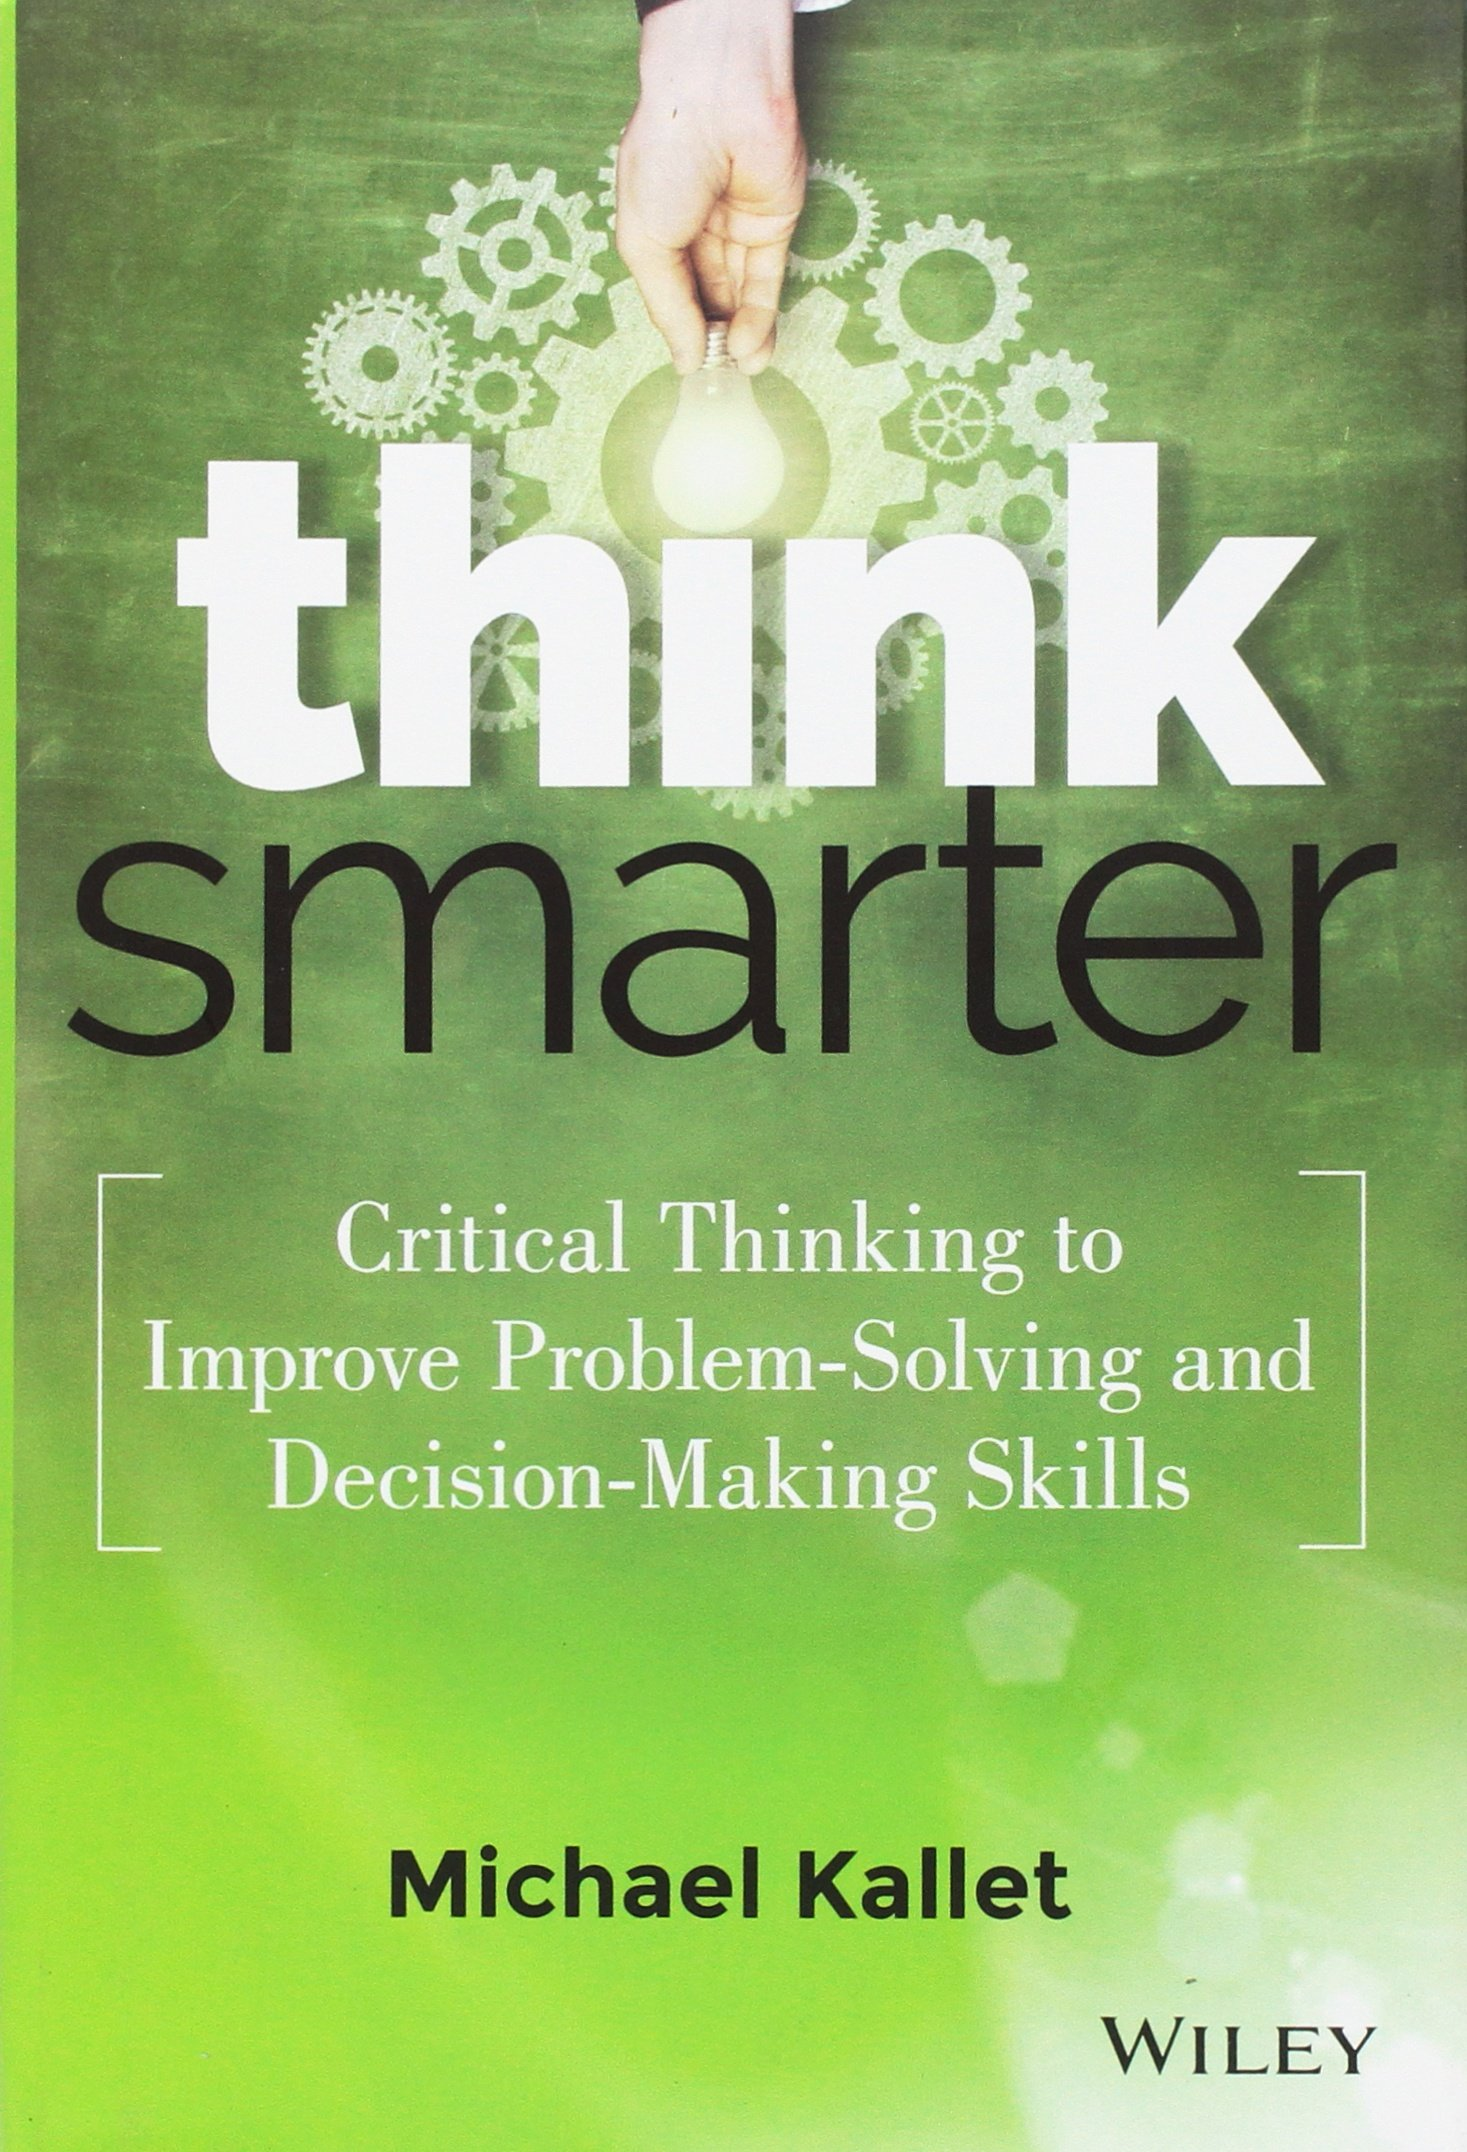 role of critical thinking in leadership The role of strategic thinking in business planning traditionally, strategic planning omits the step of innovative thinking that is so critical to business success strategic thinking is a more comprehensive planning model that covers innovation, strategic planning and operational planning.